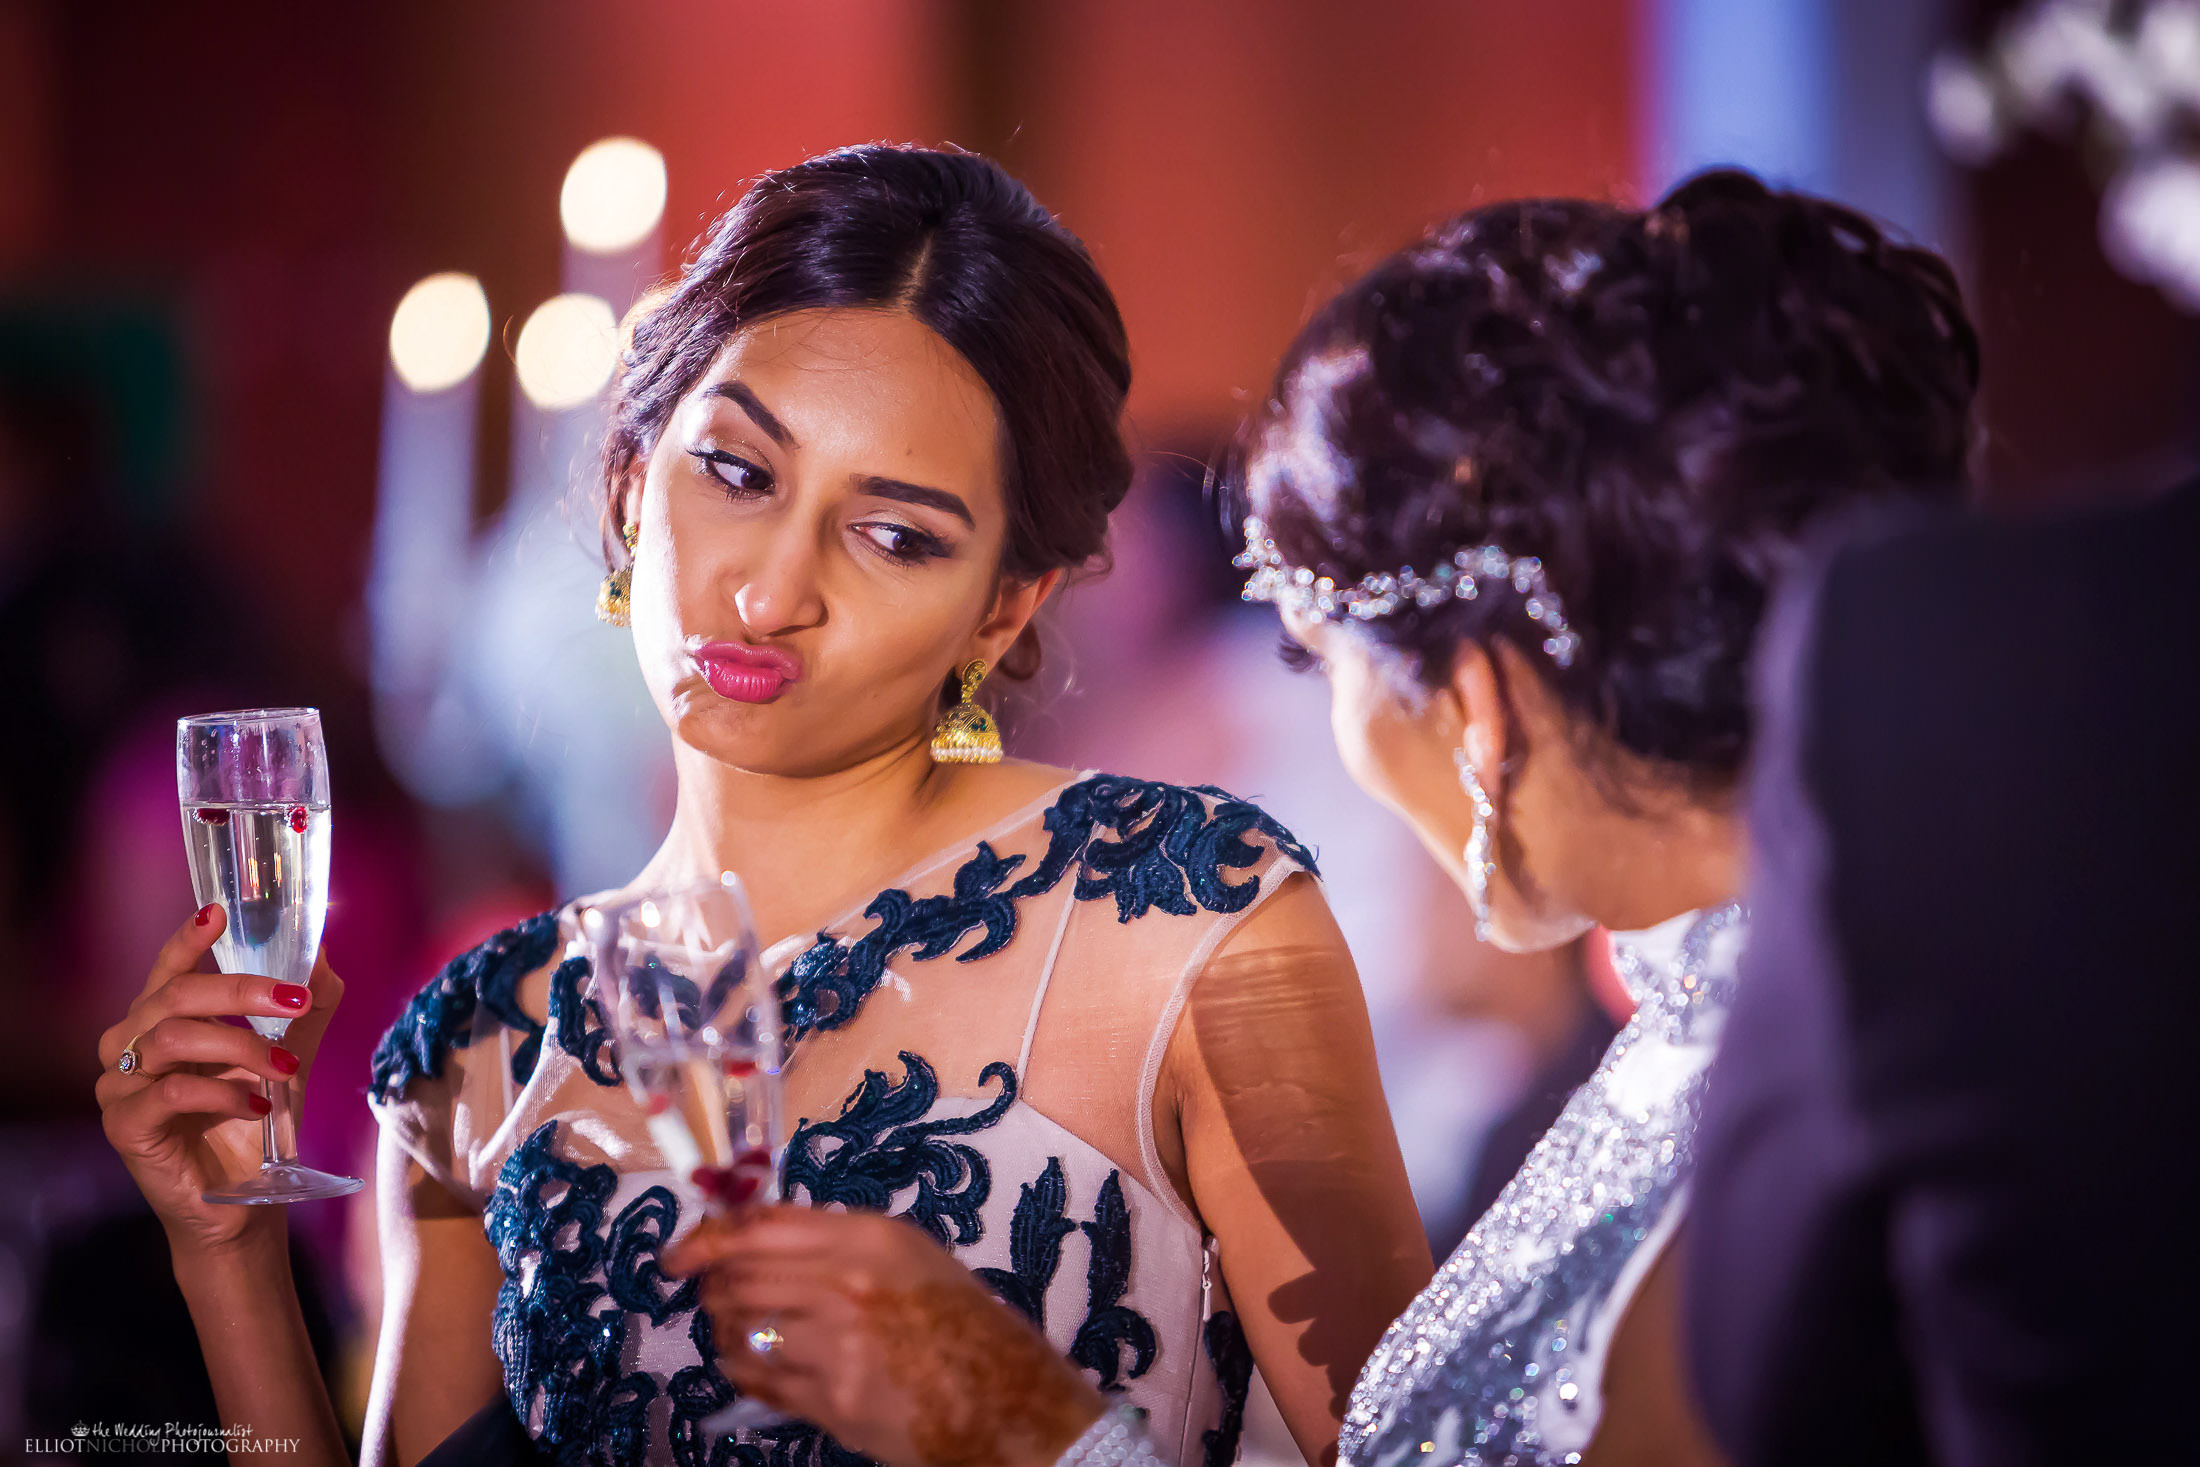 Bride and her sister having fun together during the wedding reception. Photo by Elliot Nichol Photography.